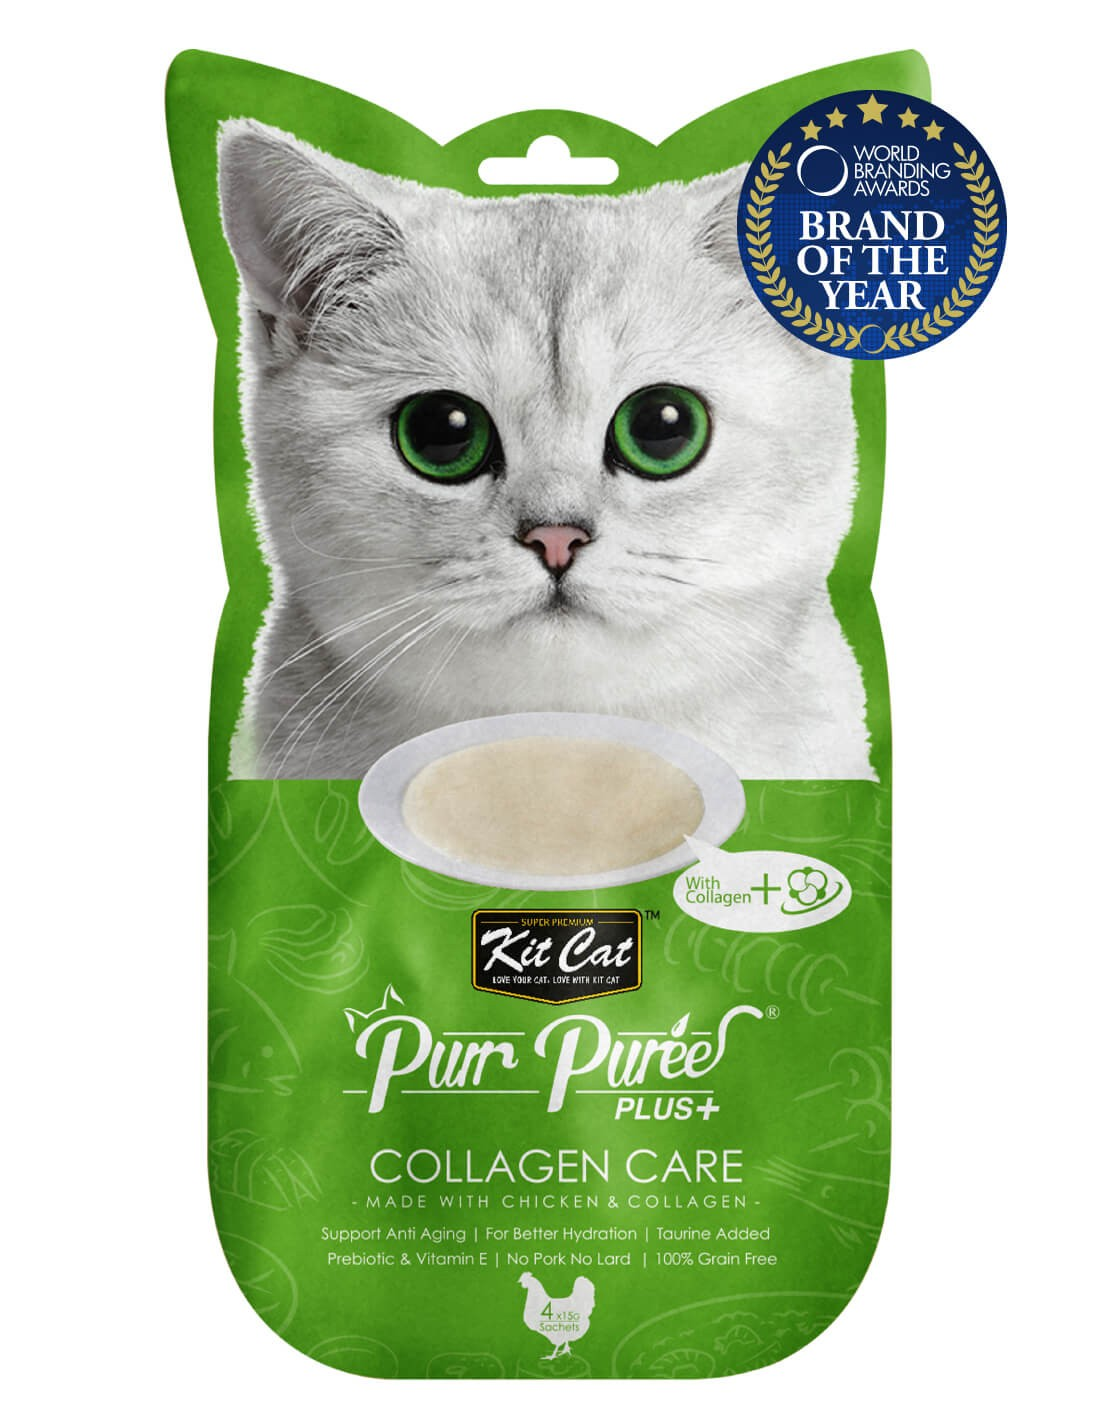 KIT CAT PurrPuree Pollo y Colágeno - Collagen Care 60g